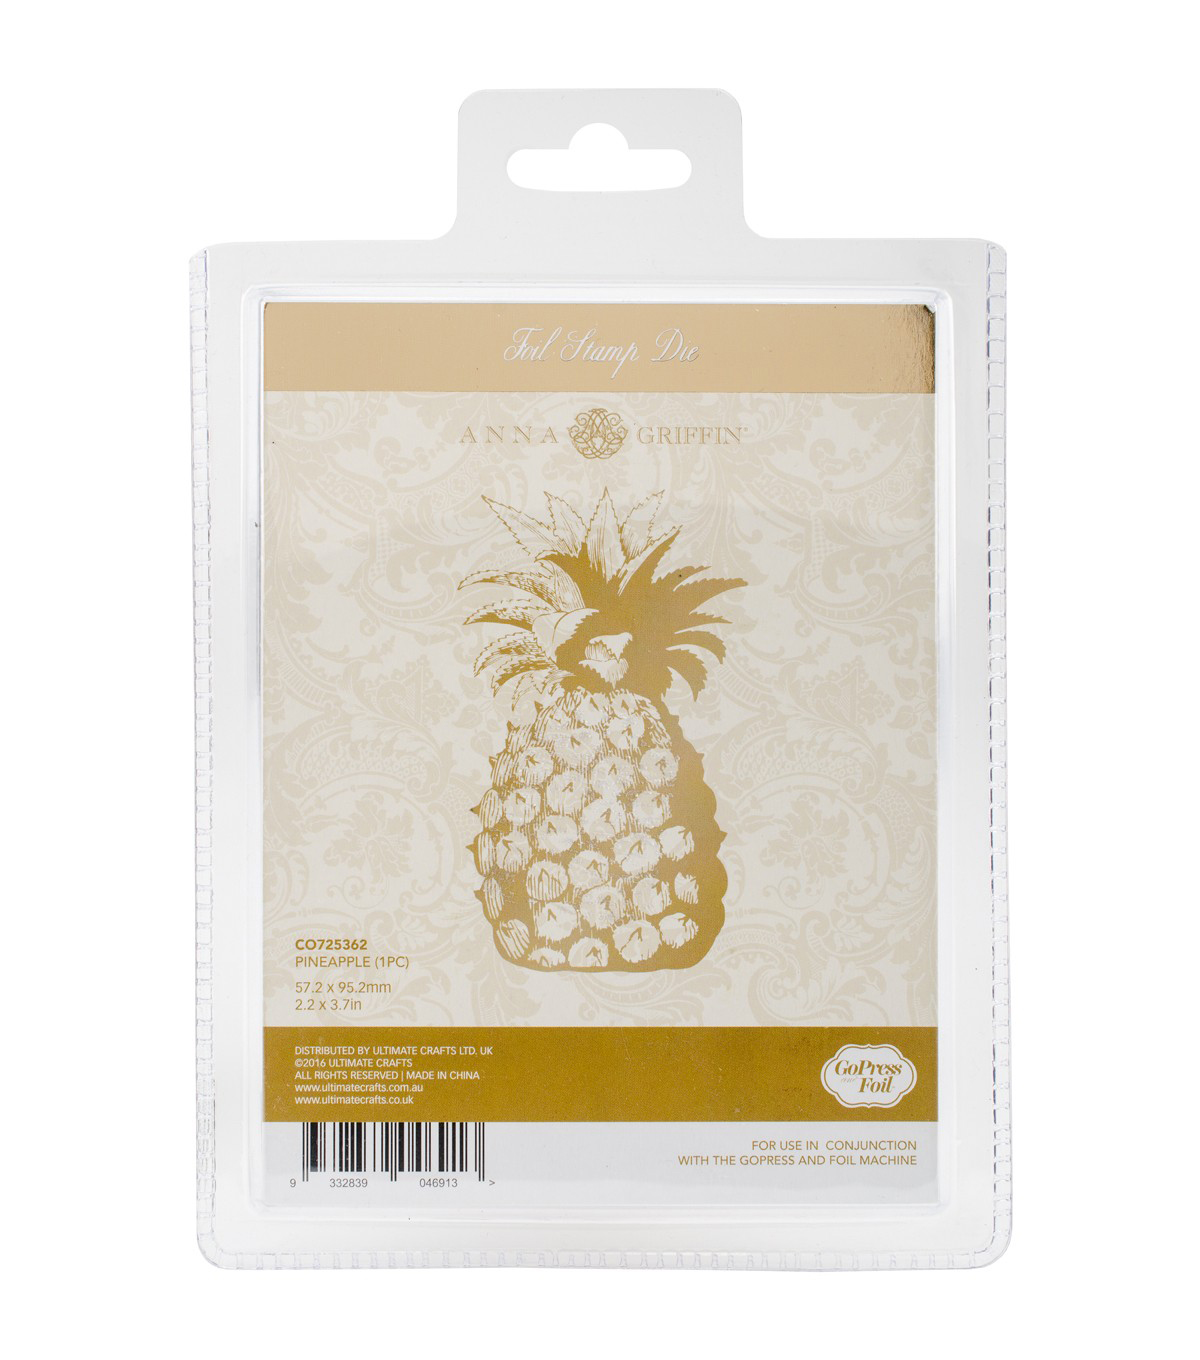 Couture Creations Anna Griffin Hotfoil Stamp-Pineapple